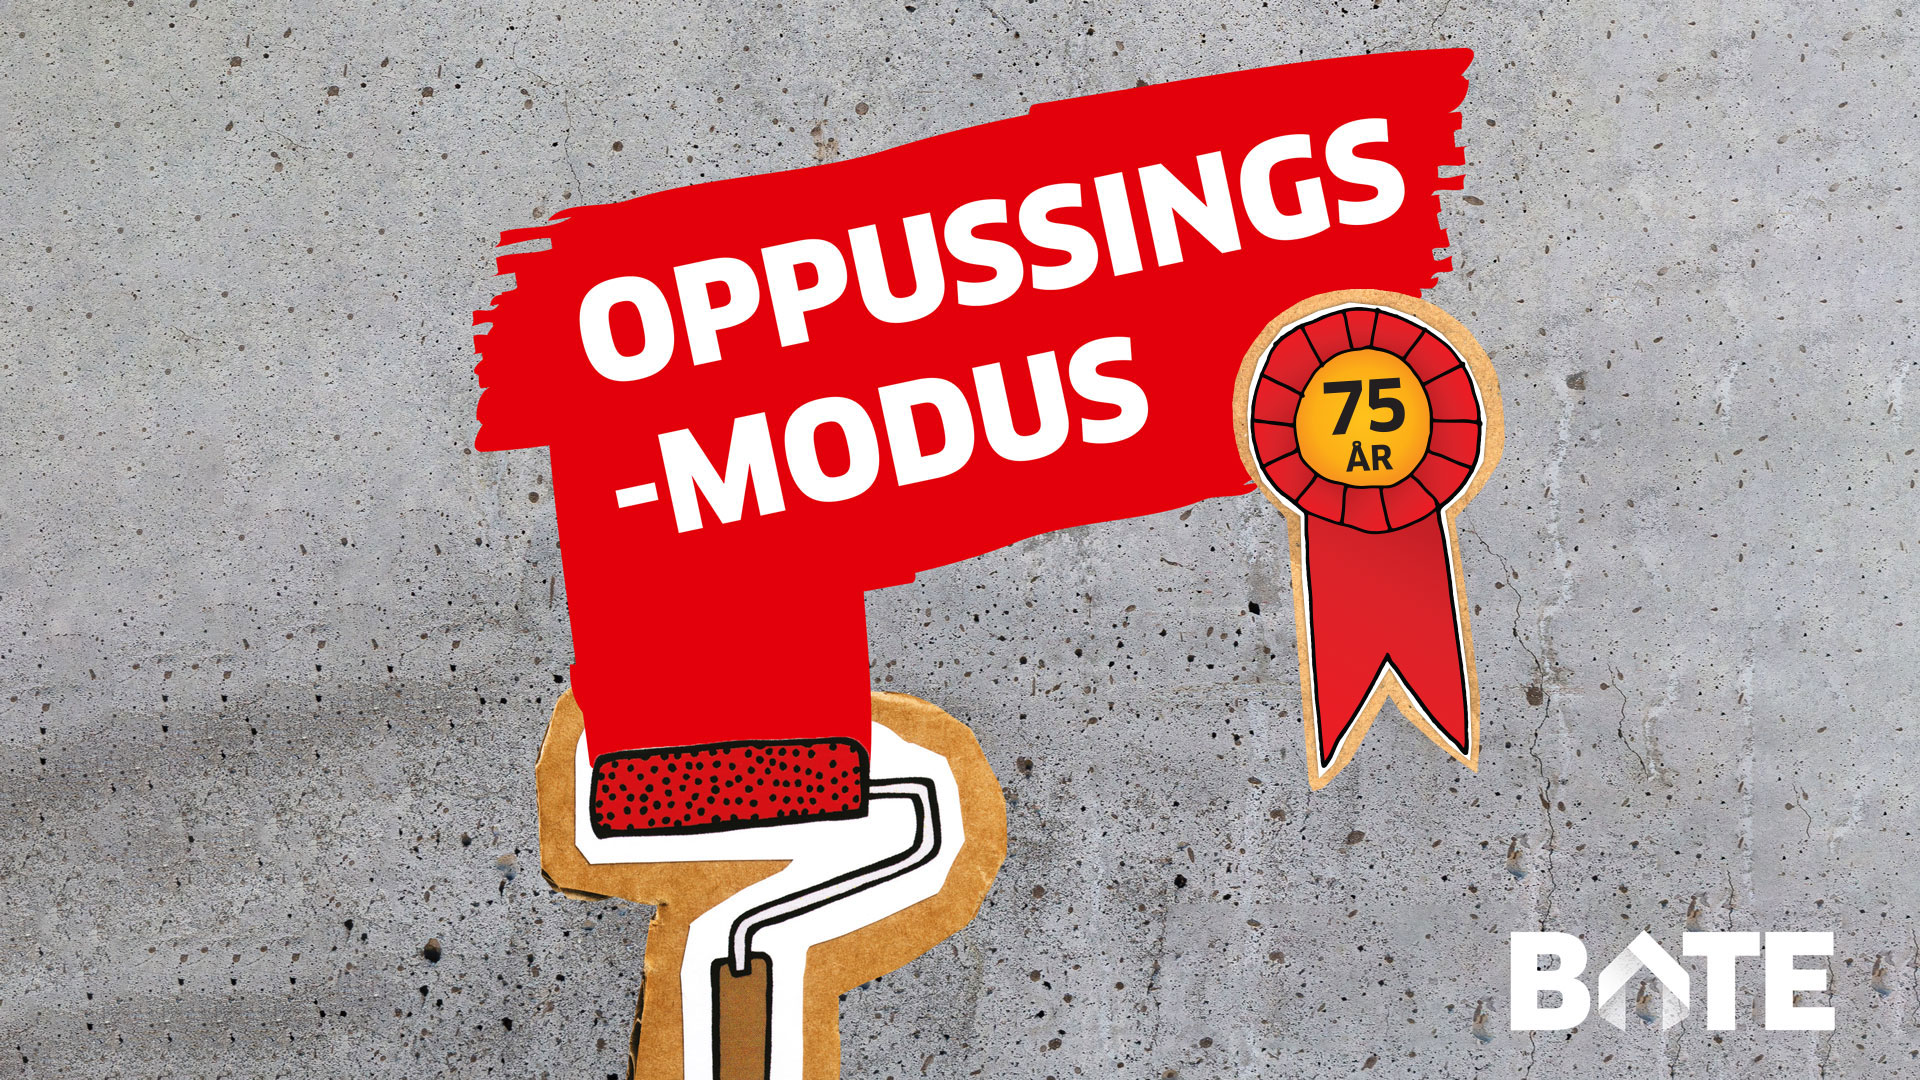 Oppussingsmodus